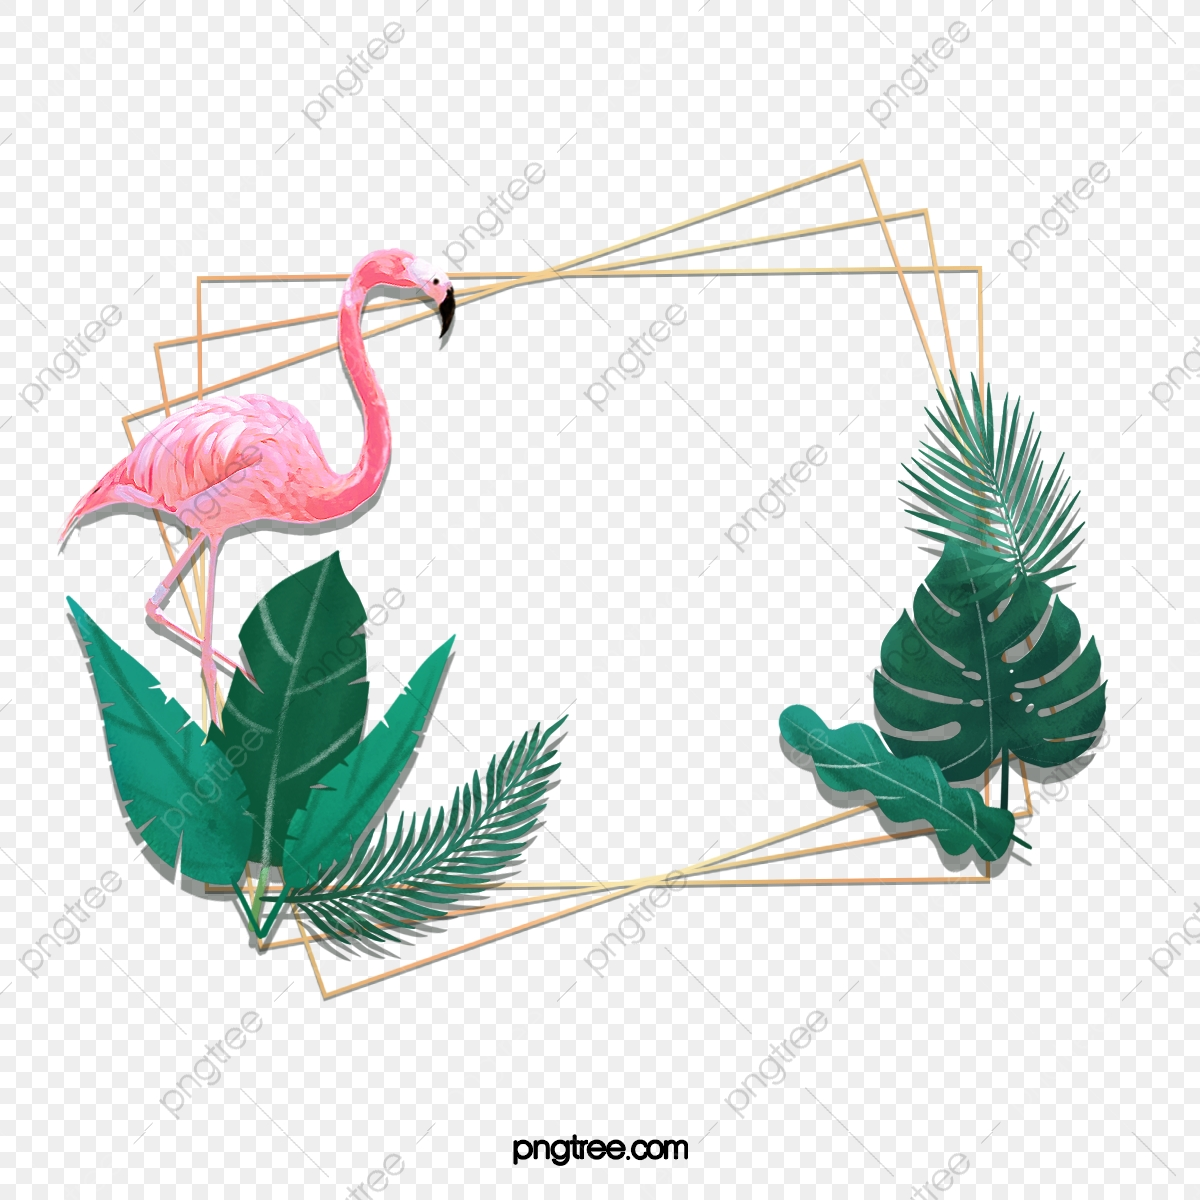 pngtree hand painted flamingo monstera creative border png image 5363338